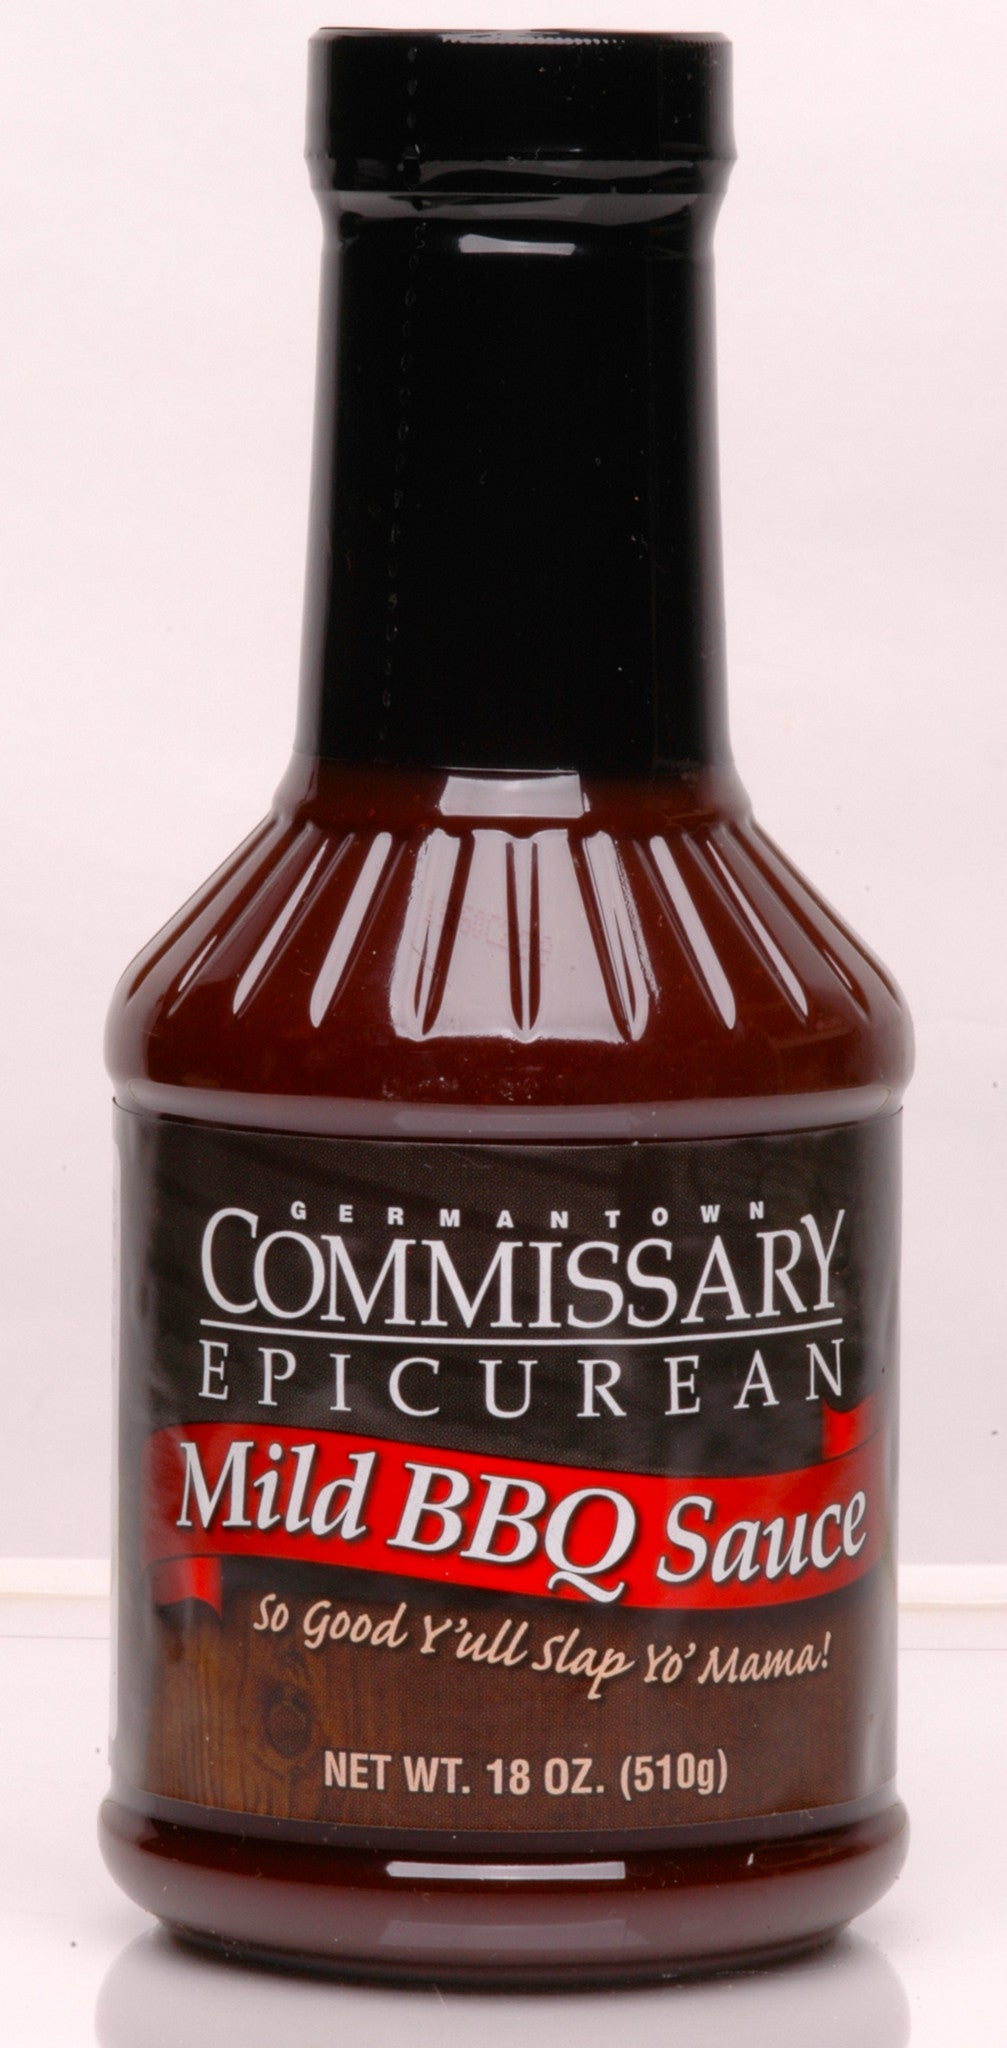 Germantown Commissary Mild BBQ Sauce